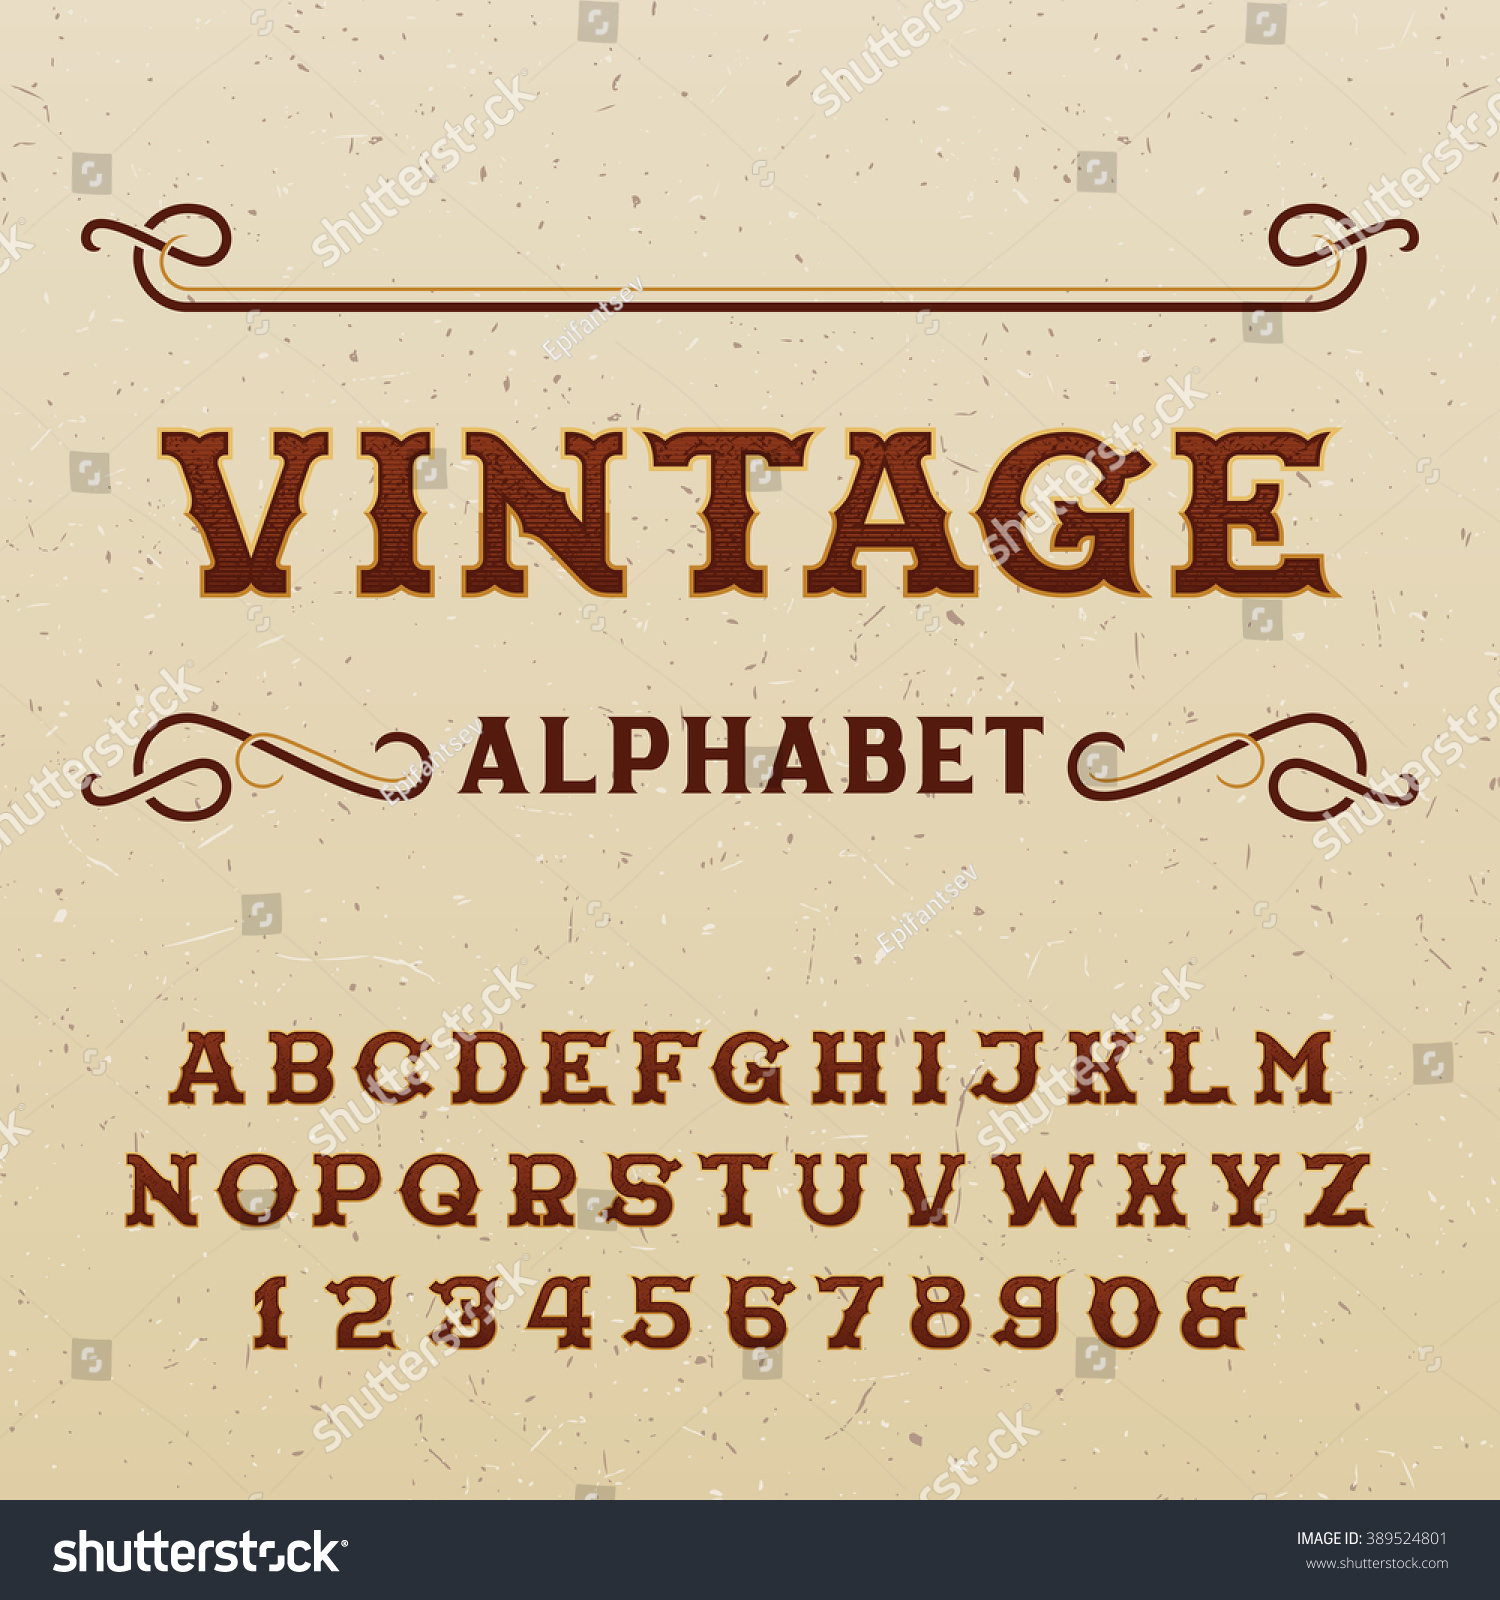 Vintage alphabet font type letters numbers stock photo photo vintage alphabet font type letters and numbers in western style on the distressed background altavistaventures Image collections